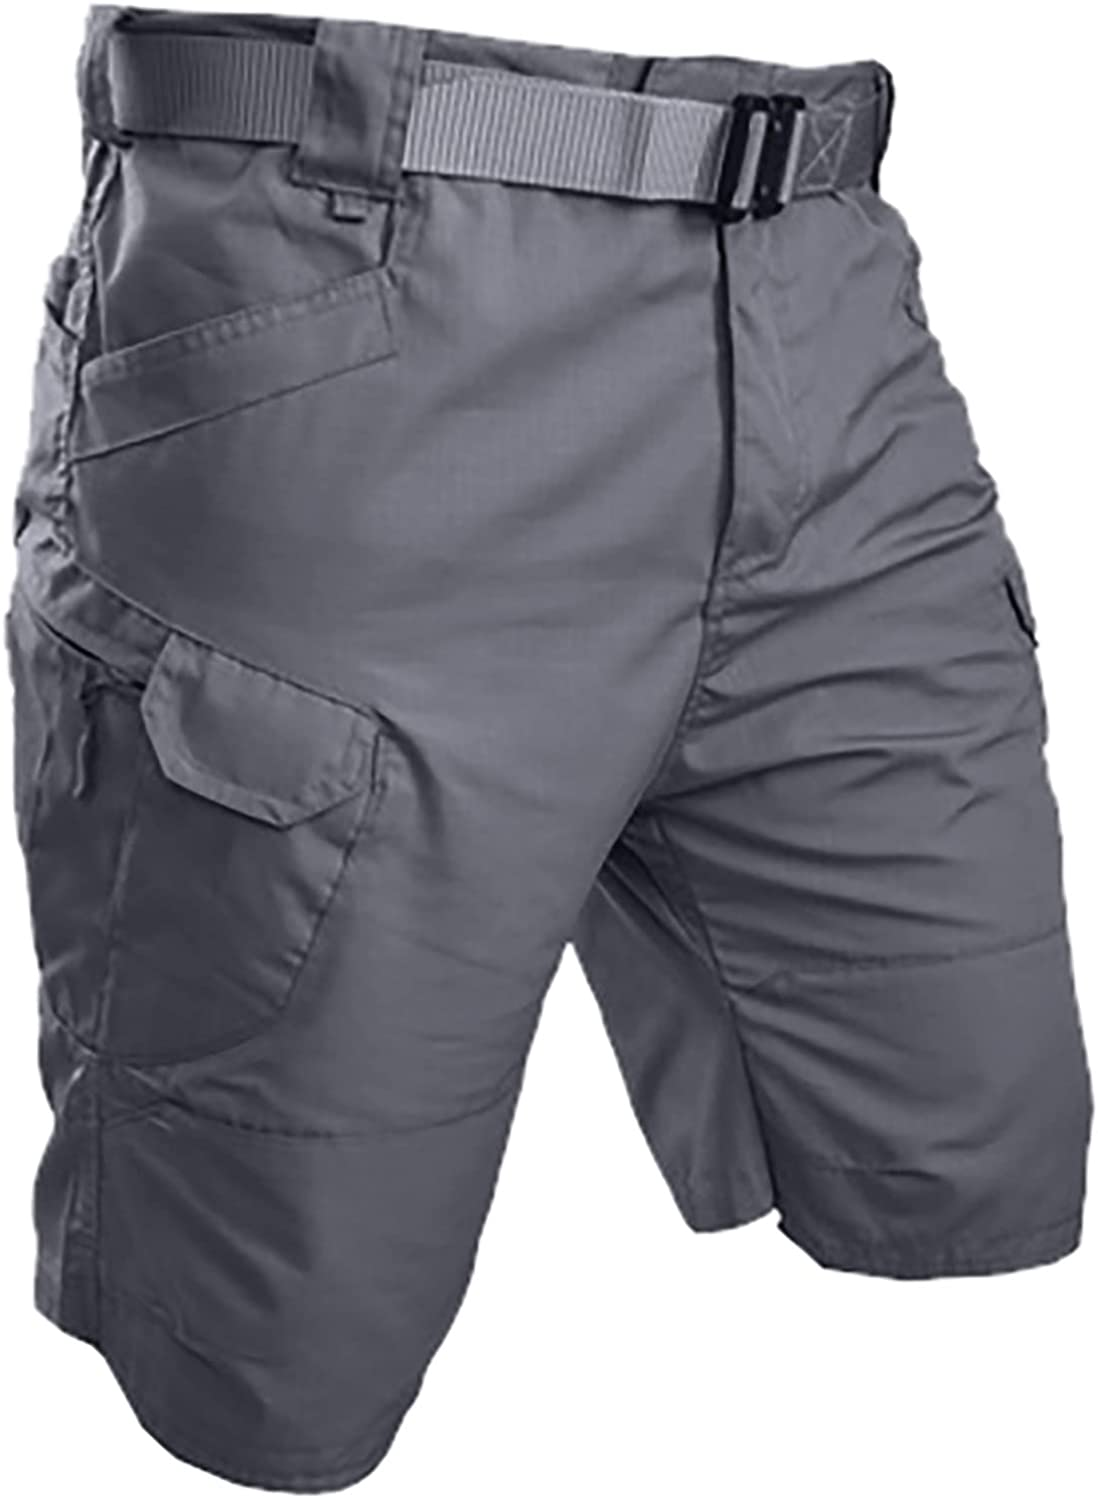 Men's Tactical Shorts Outdoor Lightweight Quick Dry Cargo Shorts Summer Hiking Casual Pants with Multi Pockets - Limsea